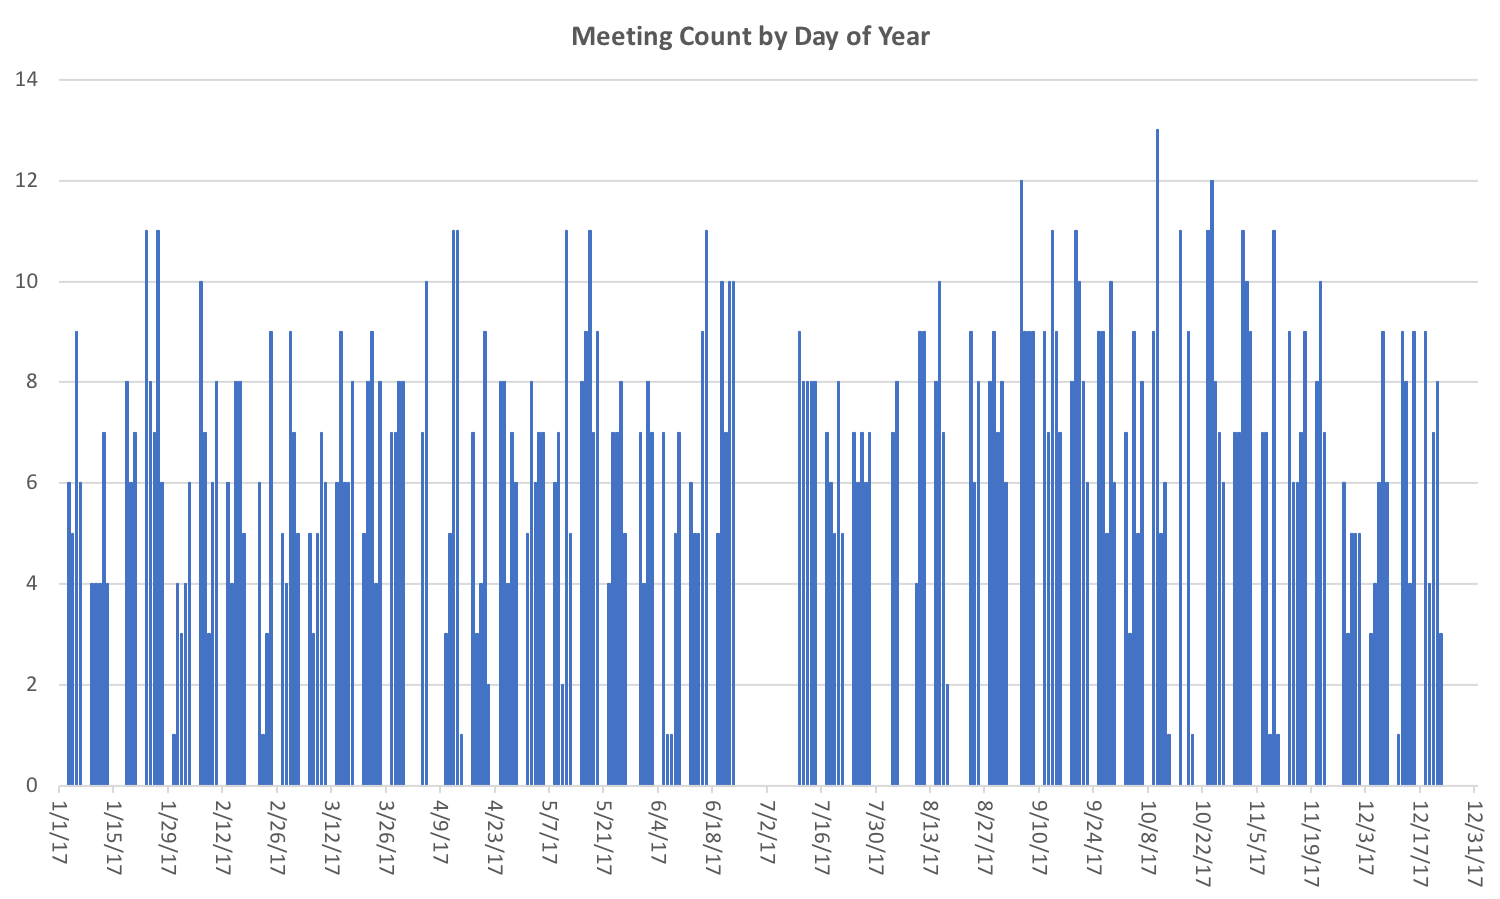 2017 Meetings by Day of Year